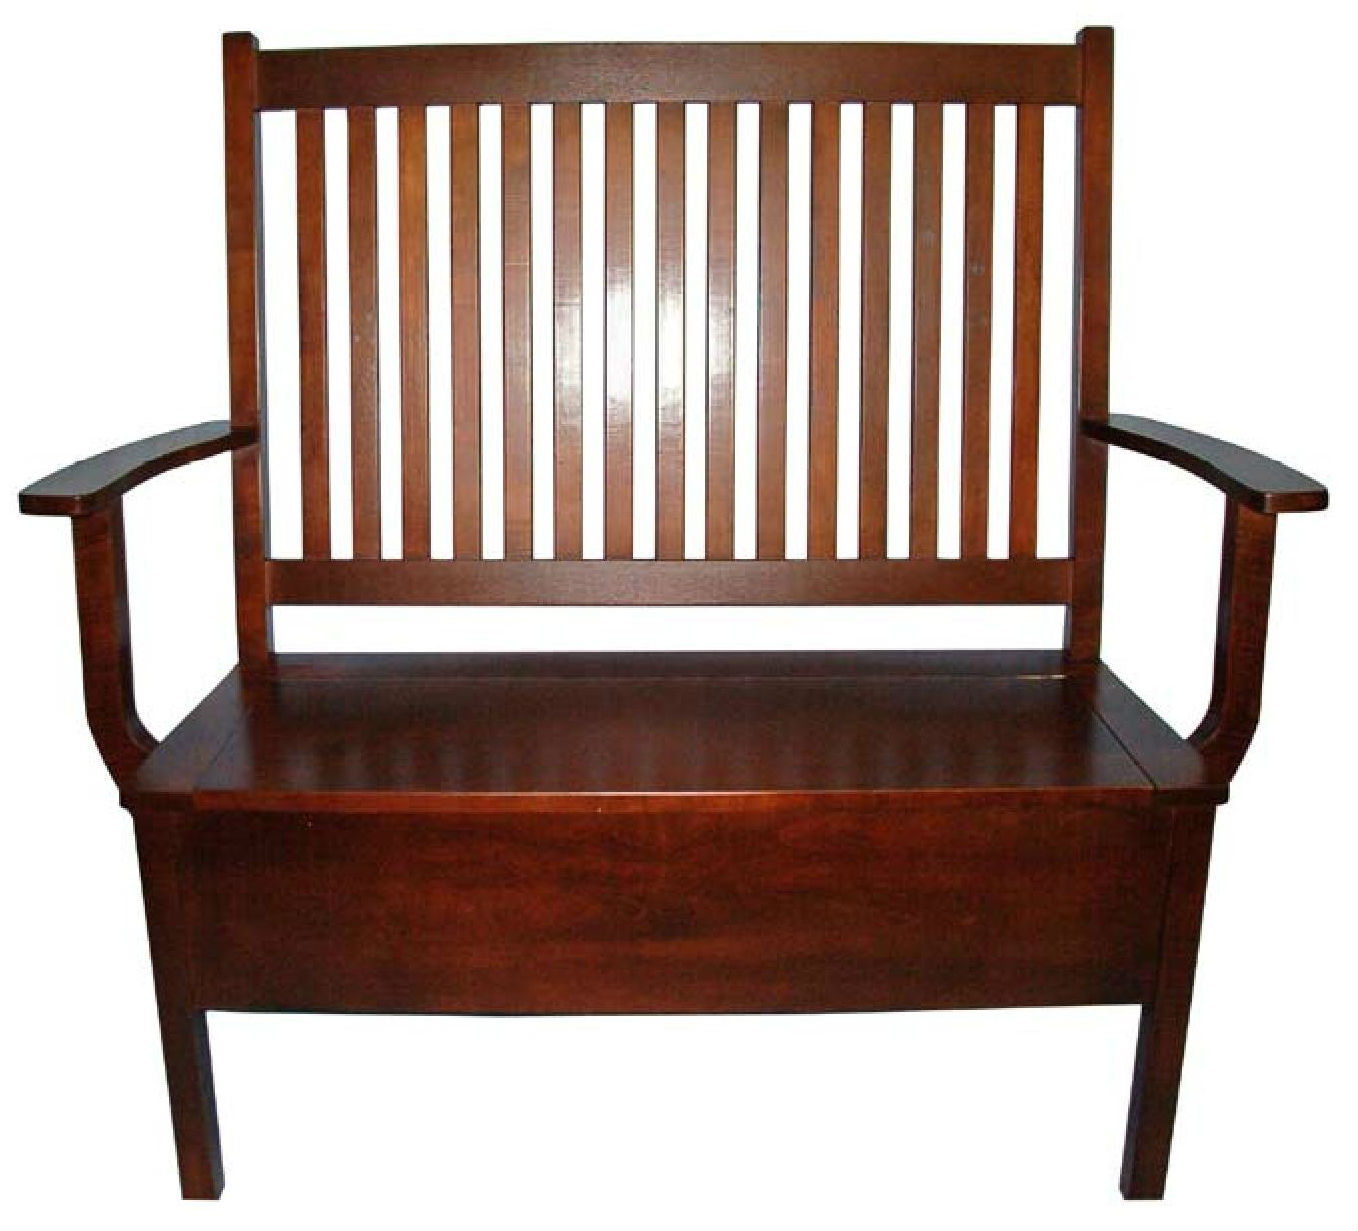 Entry Benches & Hall Seats